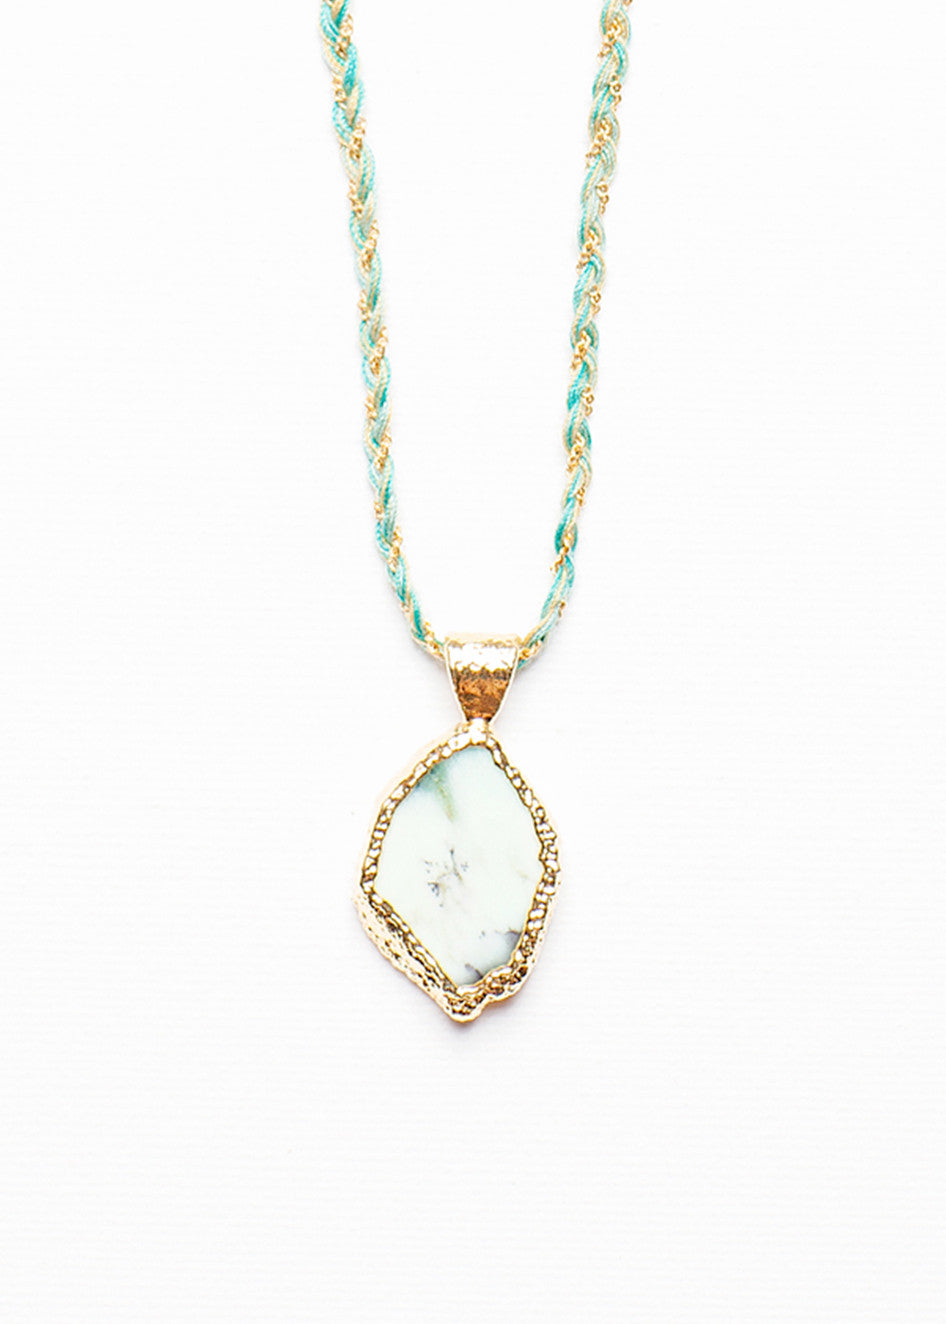 chrysoprase white necklace trillion adanecklace kent on model products with ada diamond selin